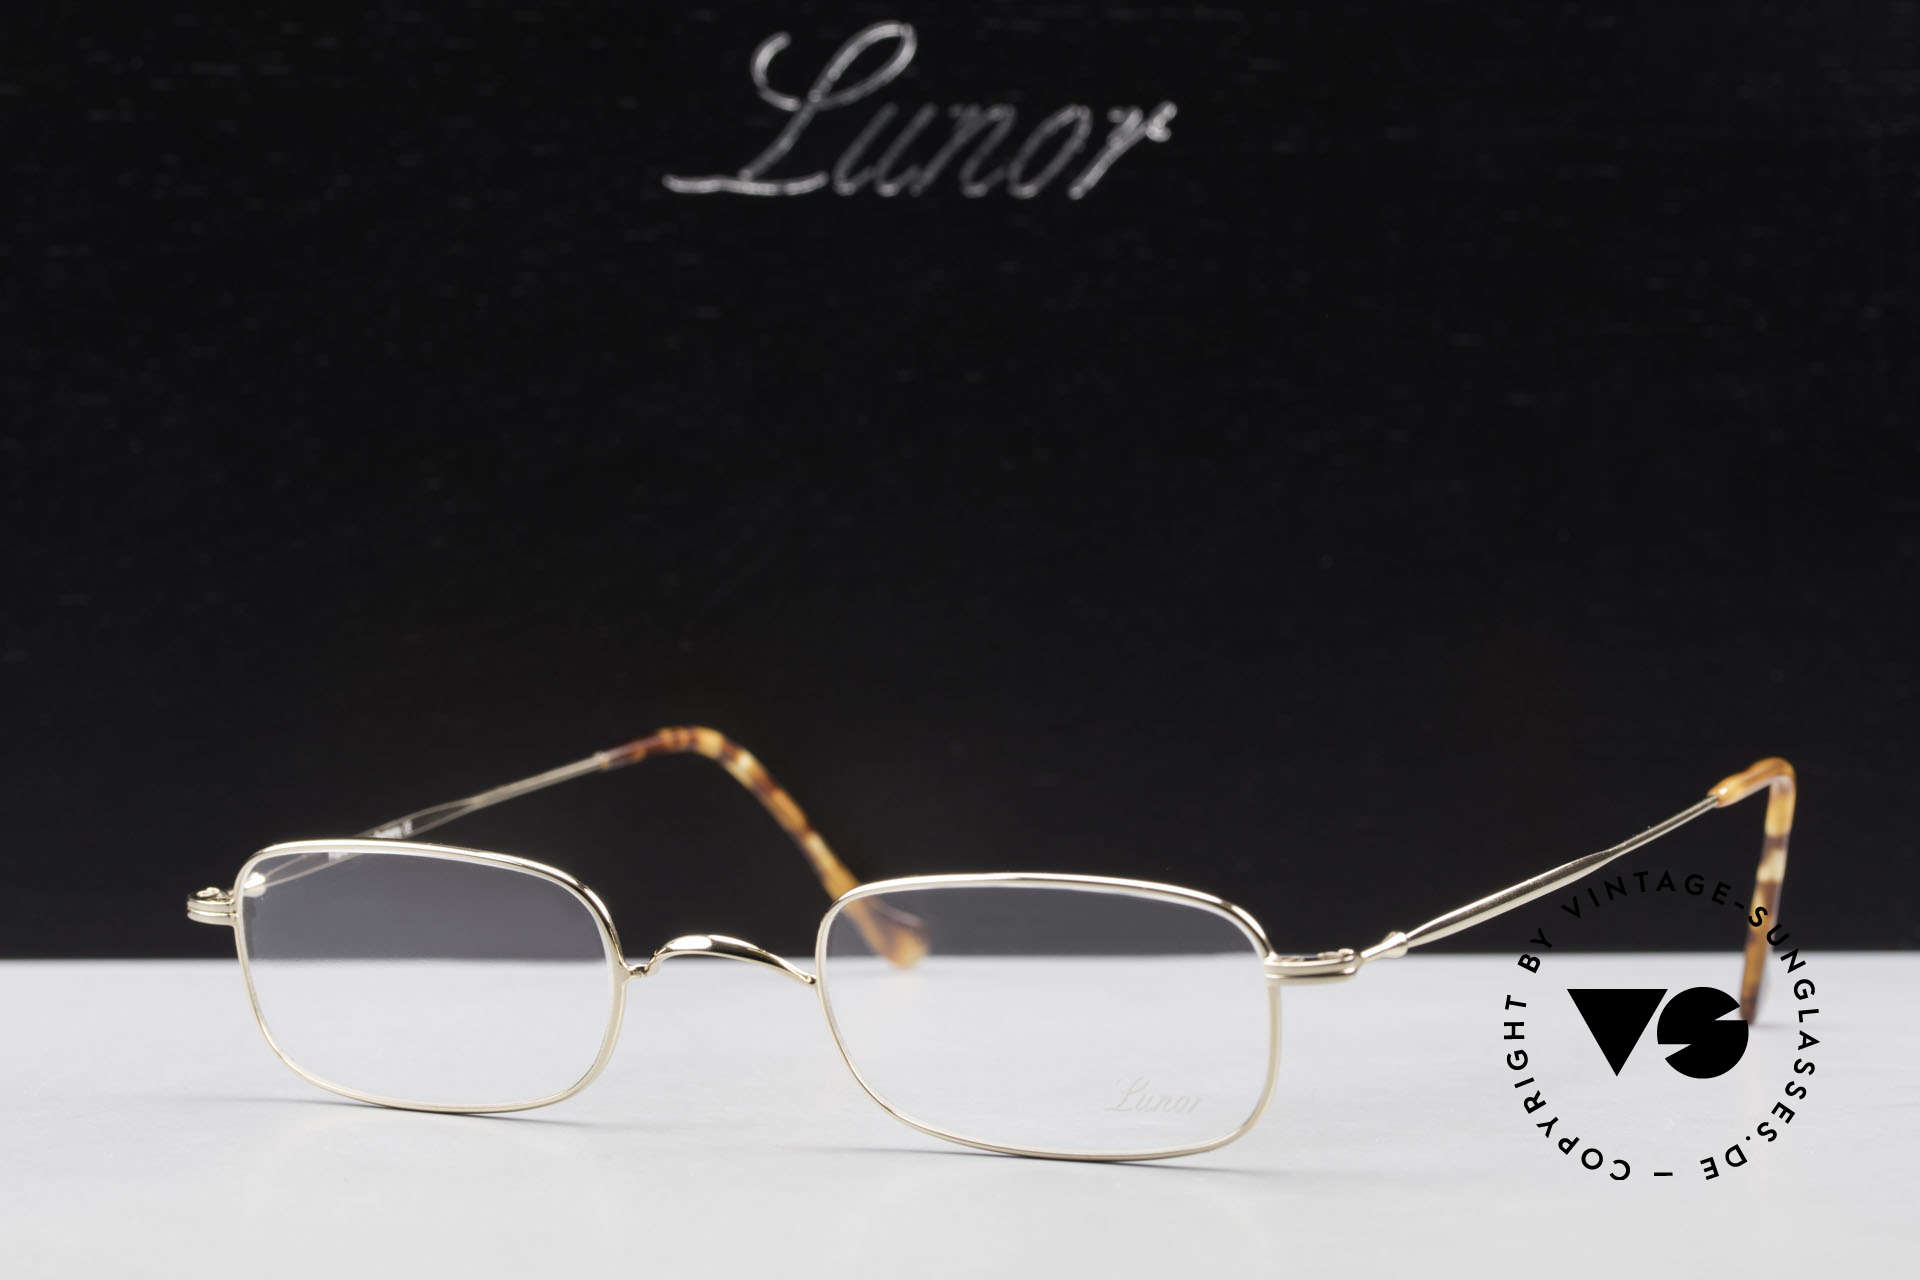 Lunor XV 321 Titanium Frame Gold-Plated, Size: small, Made for Men and Women